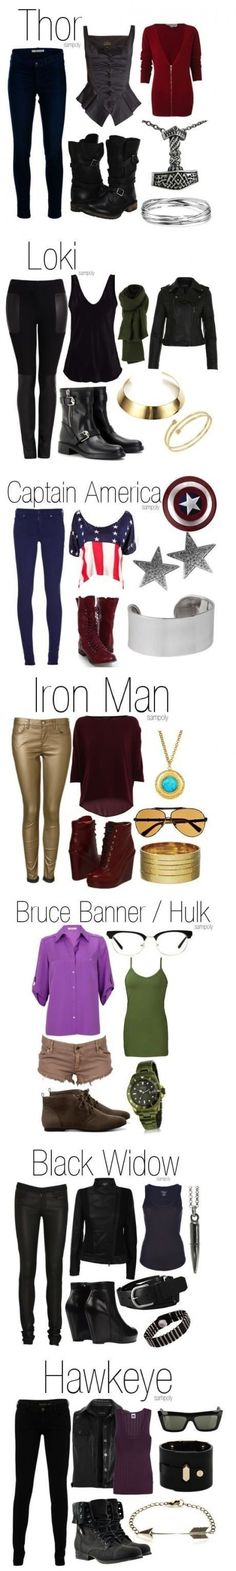 Avengers-themed outfits for women (image only)